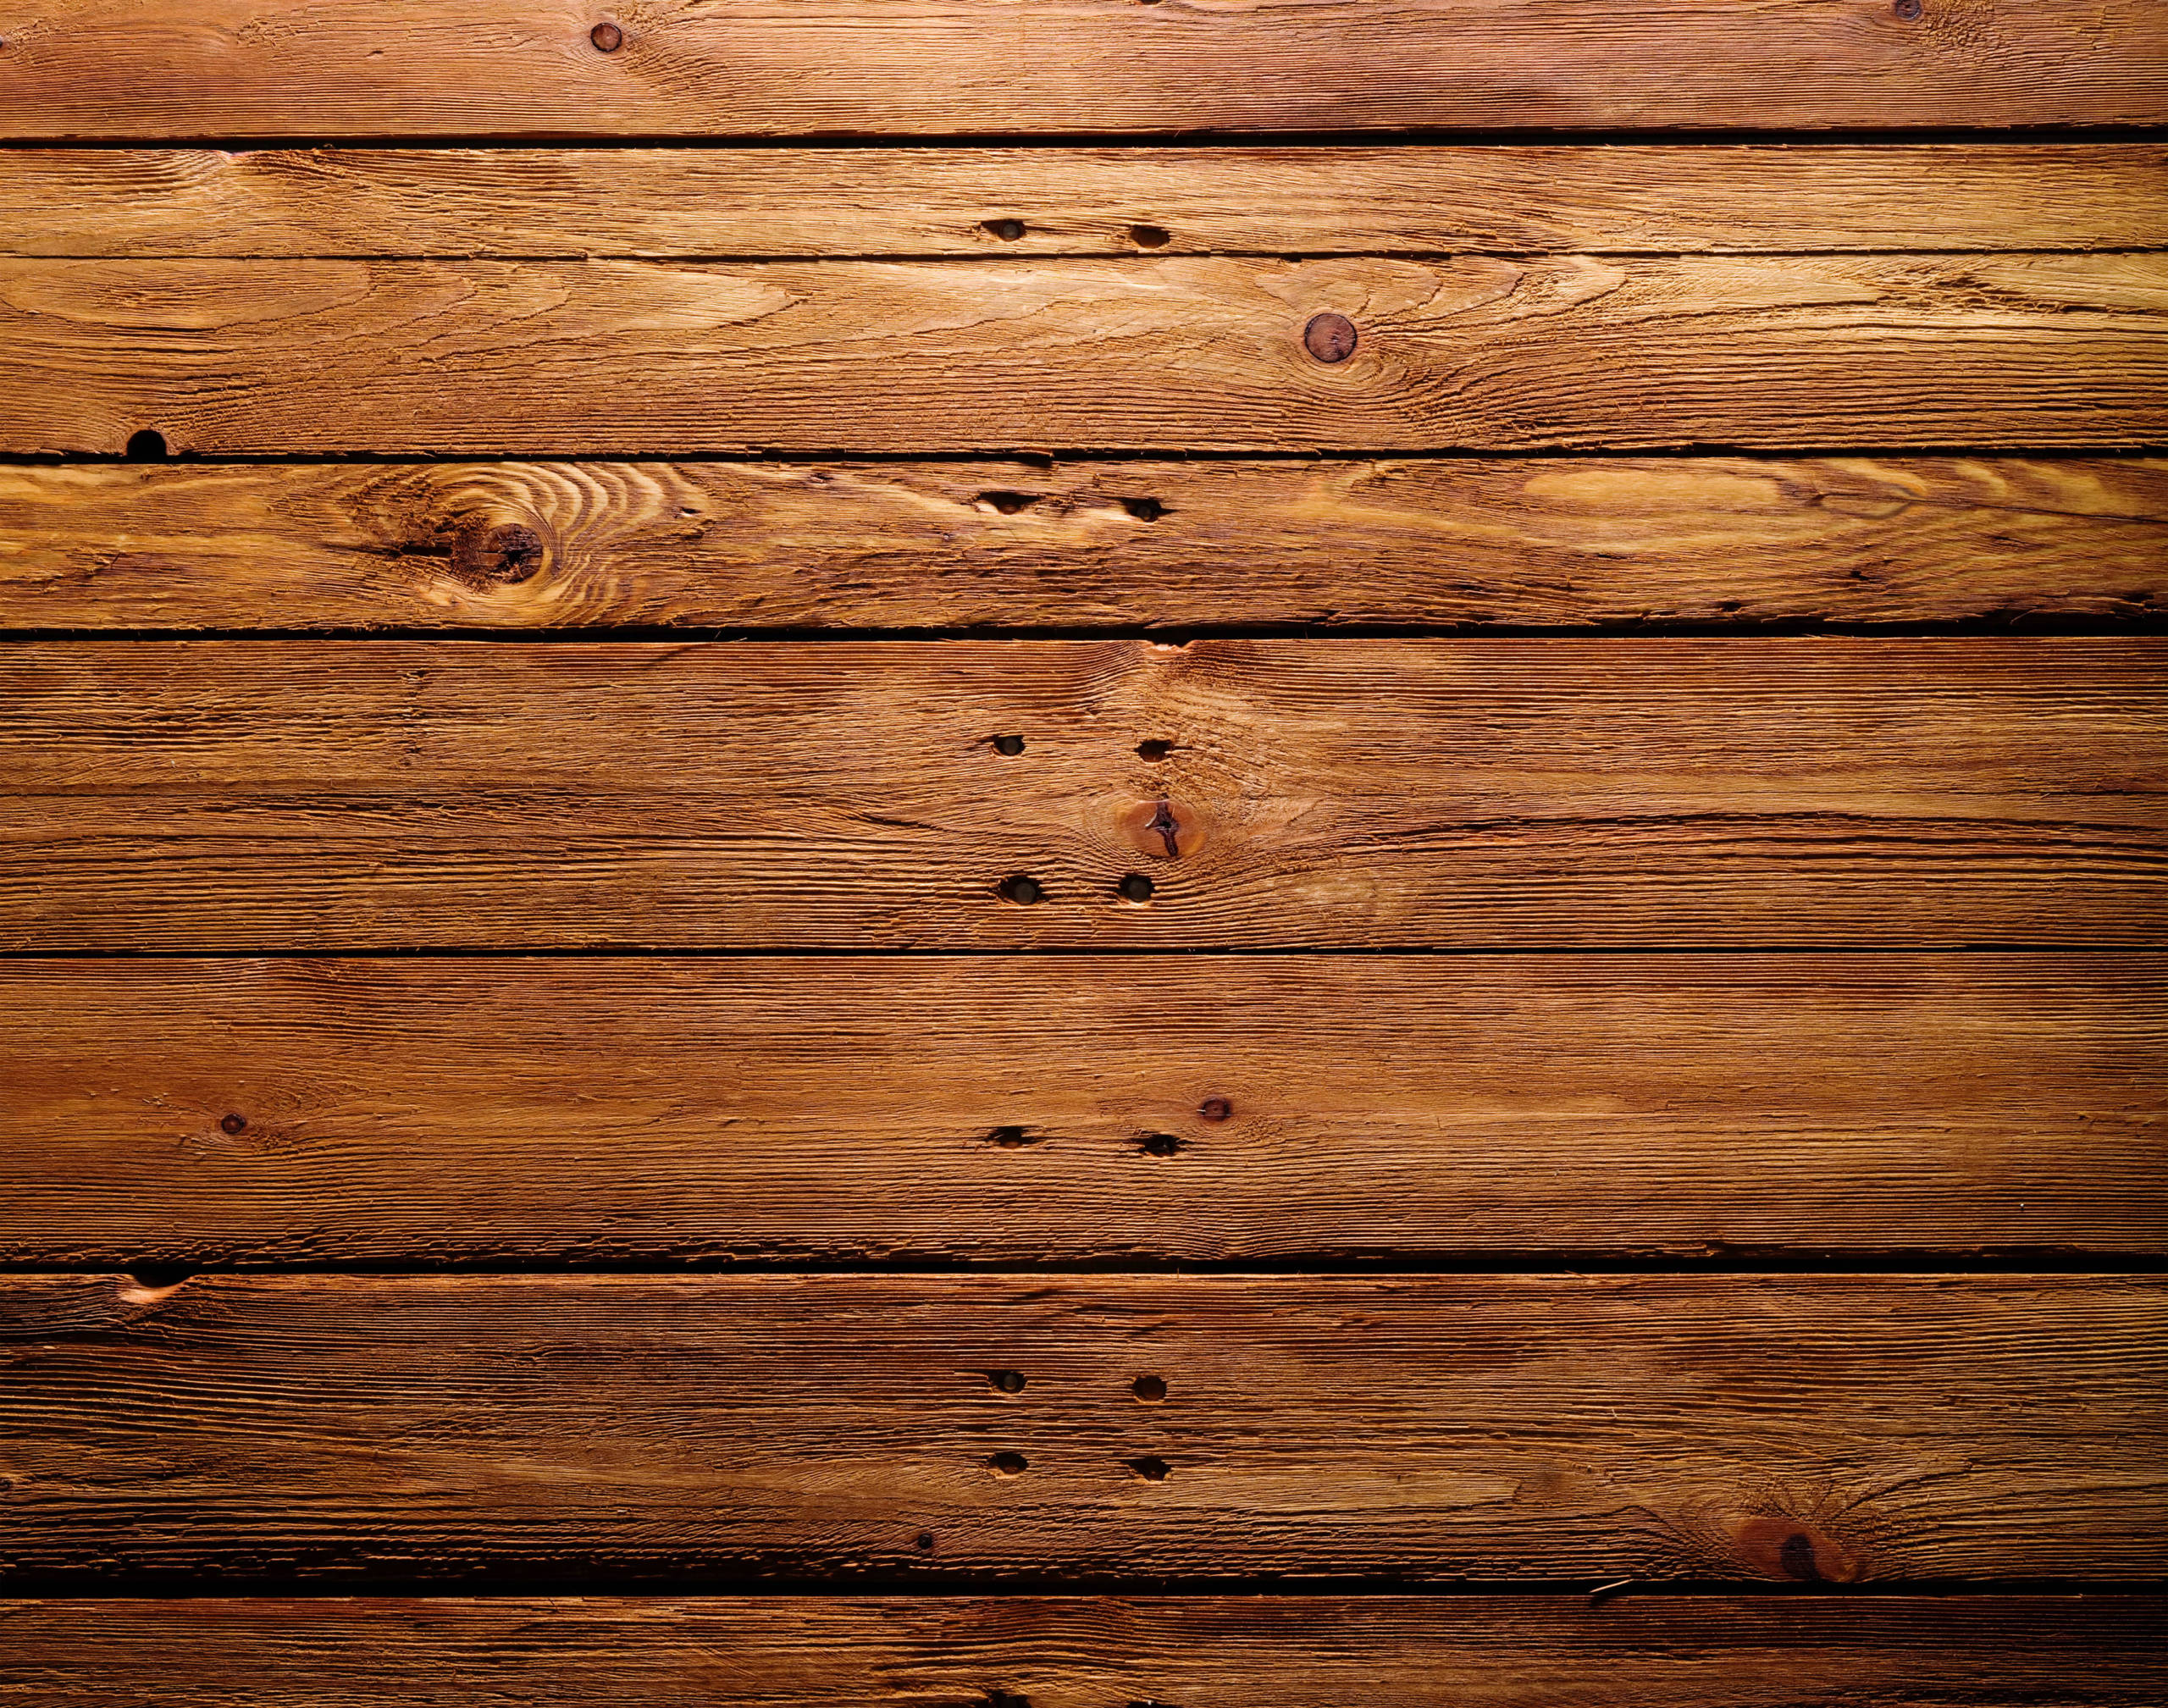 Wood background textures that you can add in your designs